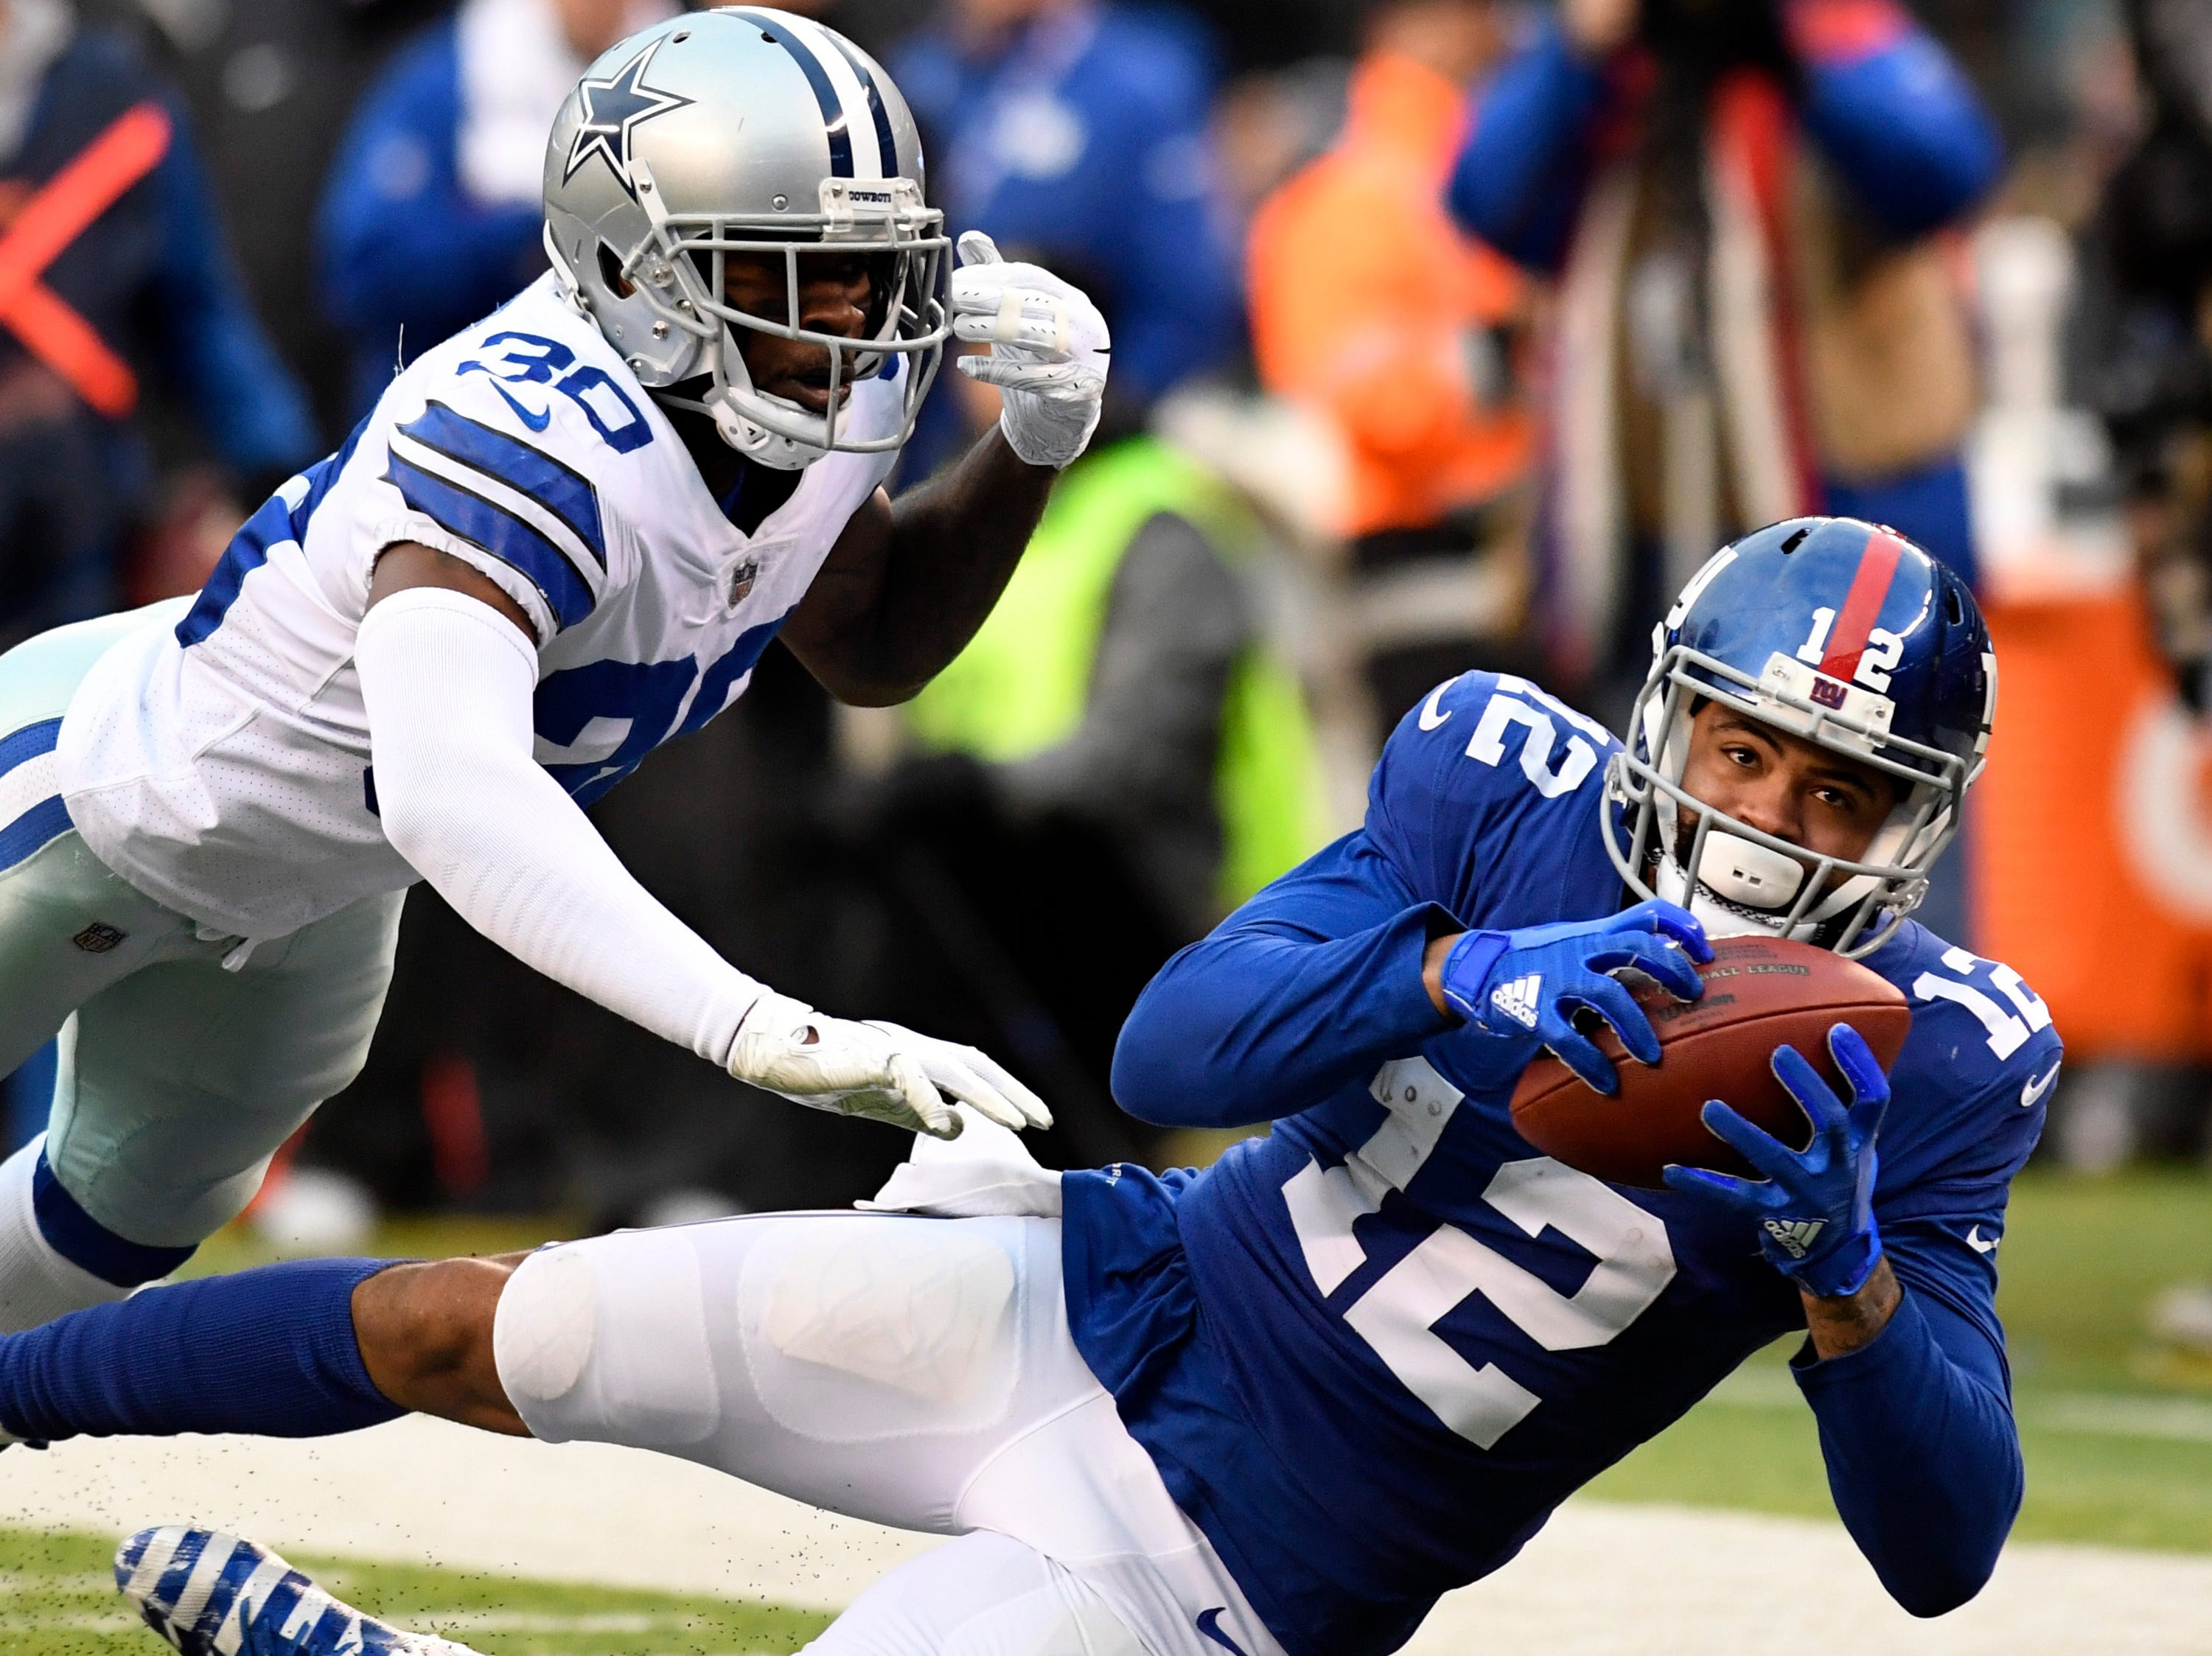 New York Giants wide receiver Cody Latimer (12) comes down with the ball with pressure from Dallas Cowboys cornerback Anthony Brown (30) in the fourth quarter. The New York Giants lose to the Dallas Cowboys 36-35 on Sunday, Dec. 30, 2018, in East Rutherford.